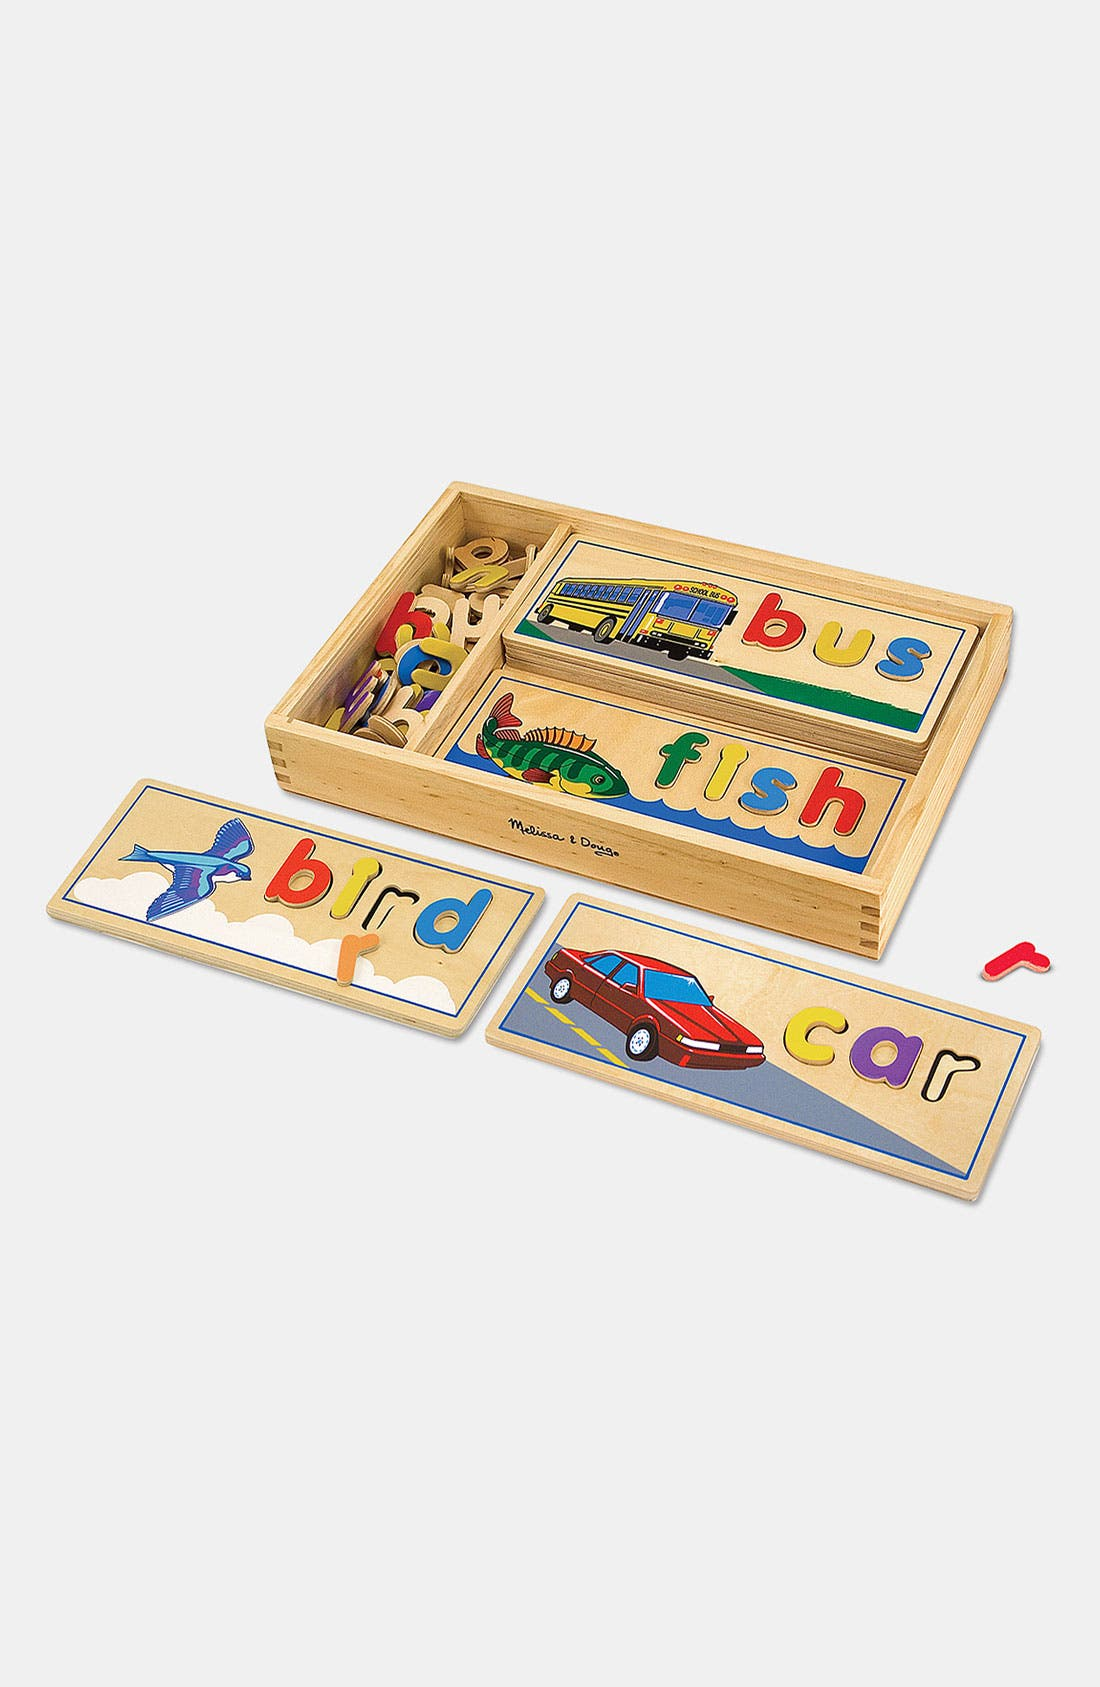 'See & Spell' Learning Toy,                             Main thumbnail 1, color,                             NONE